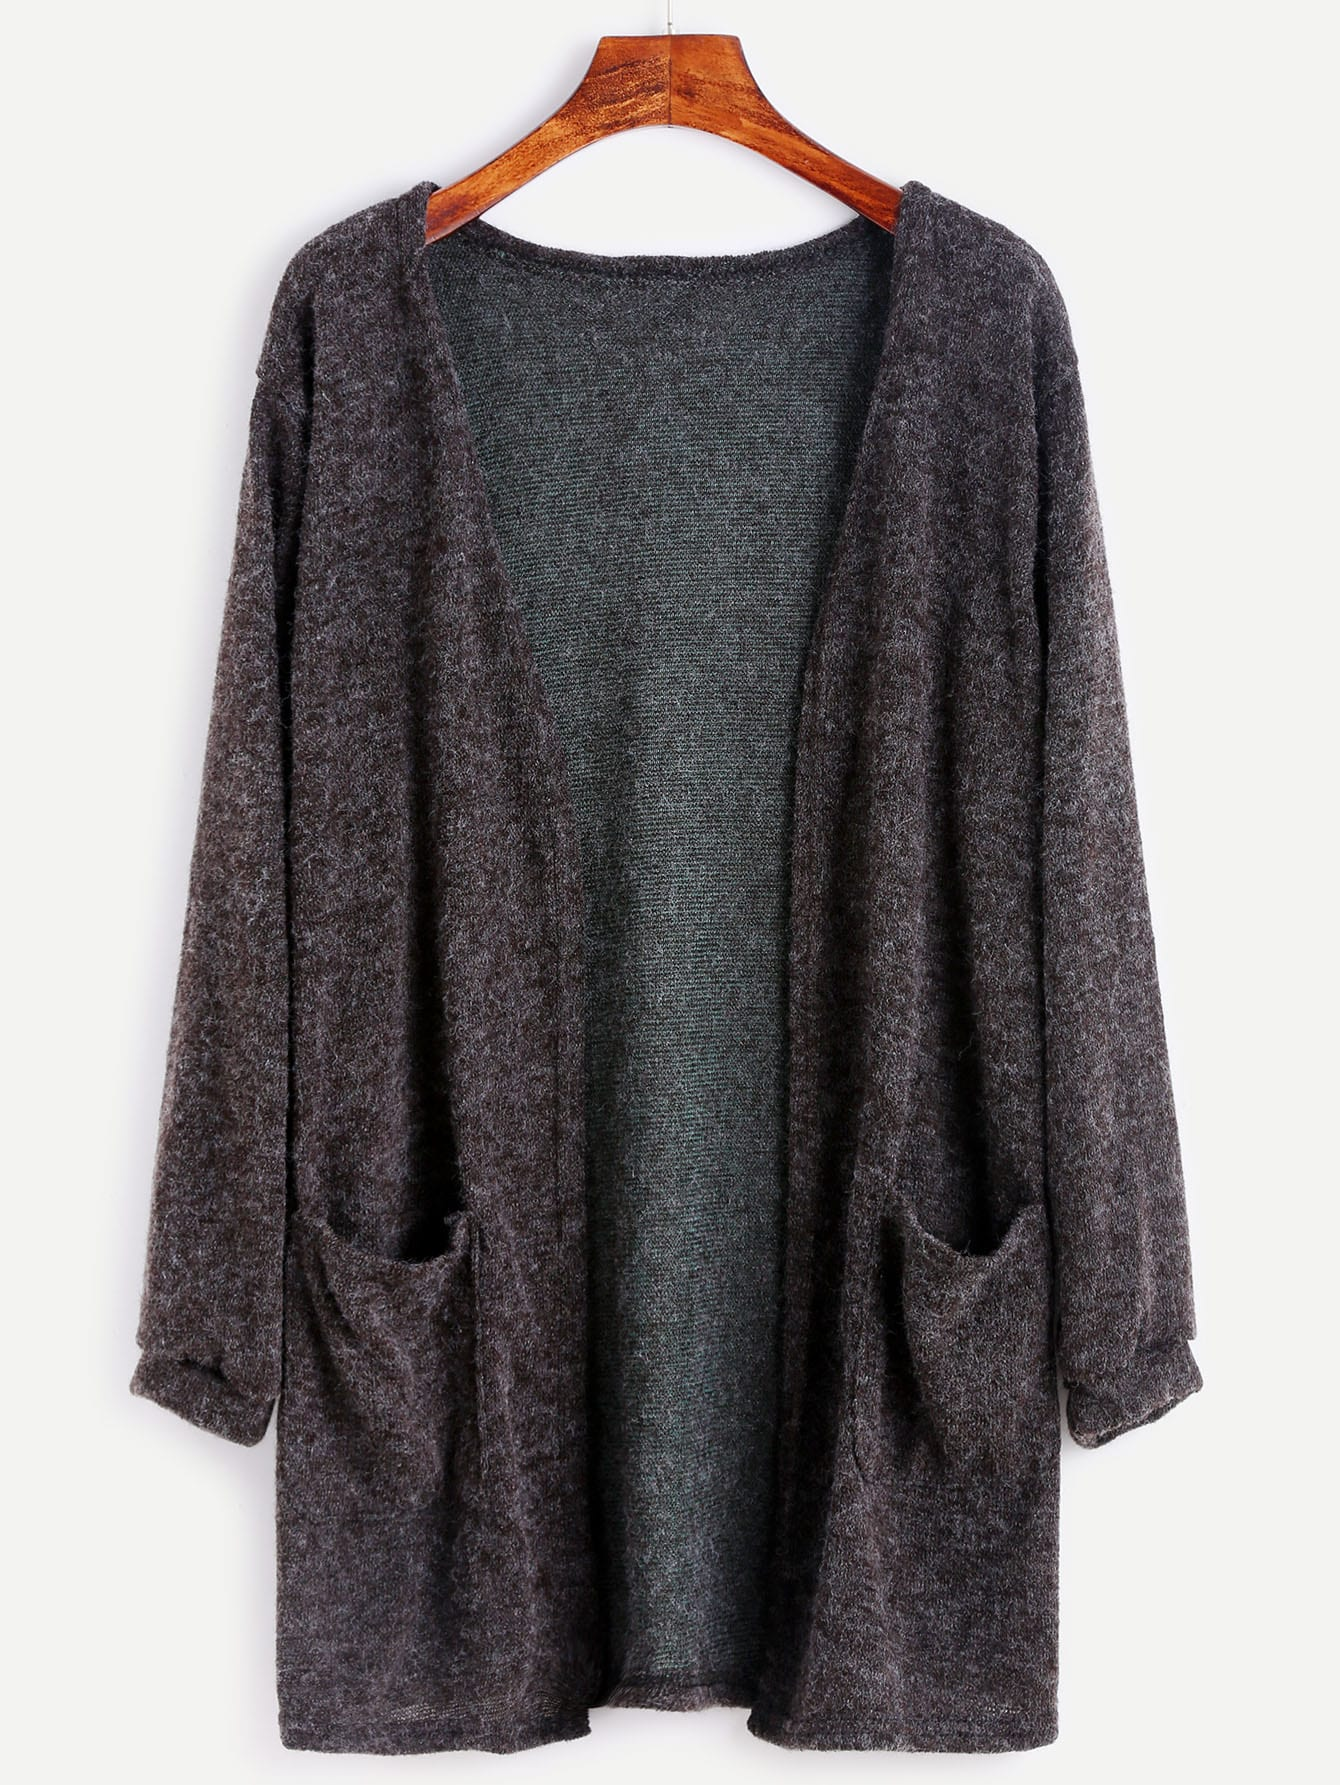 Dark Grey Fuzzy Cardigan -SheIn(Sheinside)